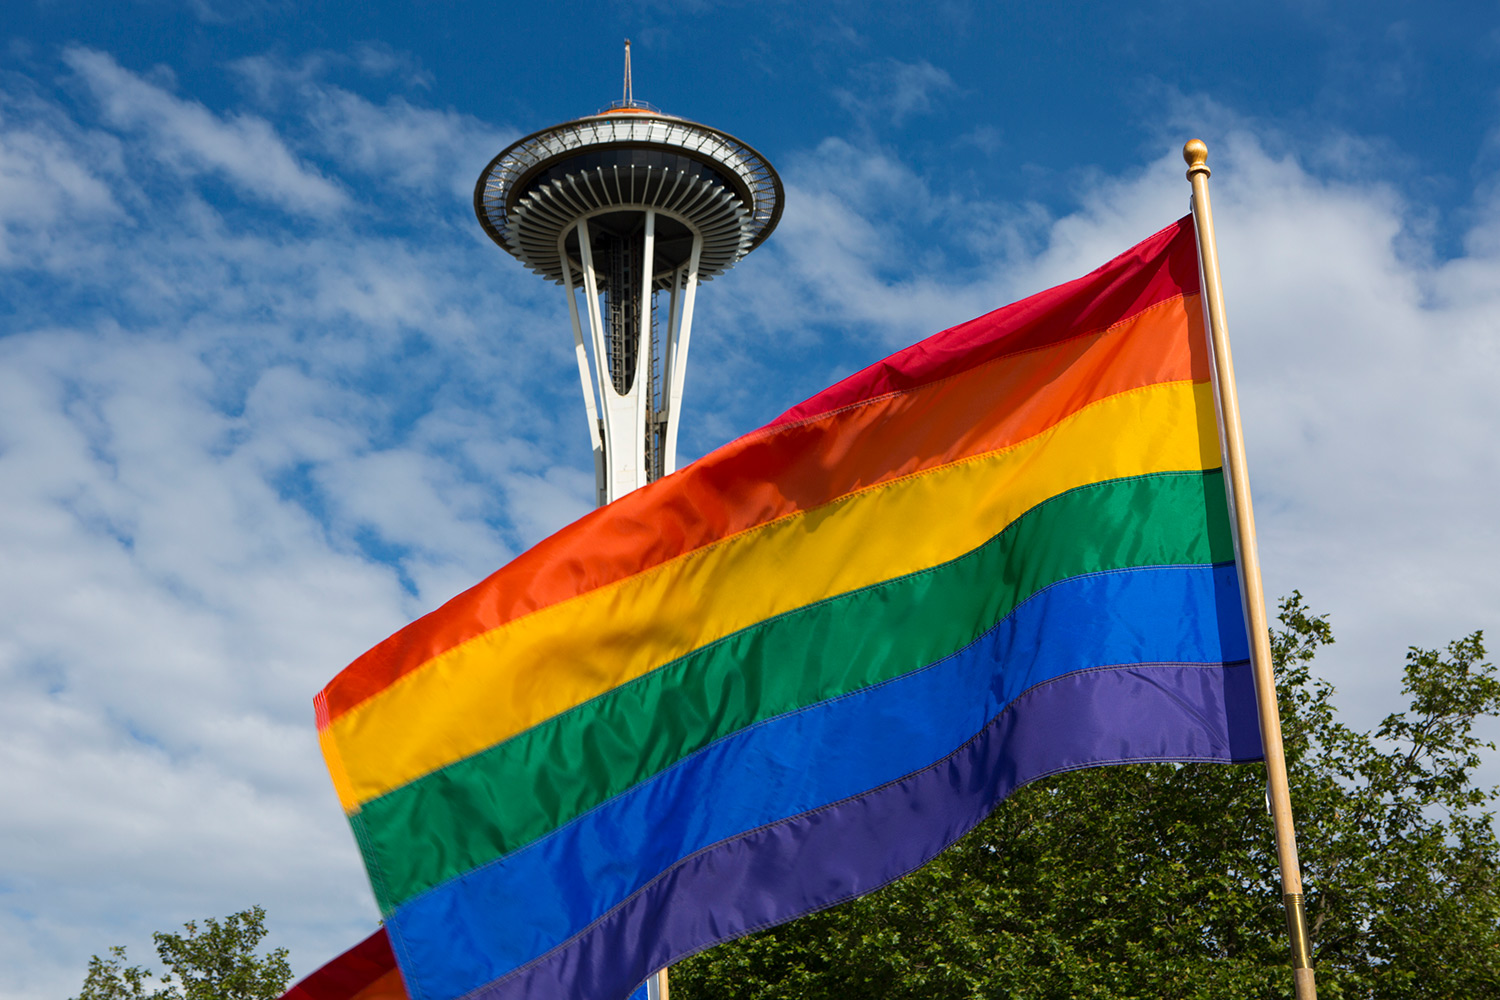 pride flag on the foreground with the Seattle space needle in the background